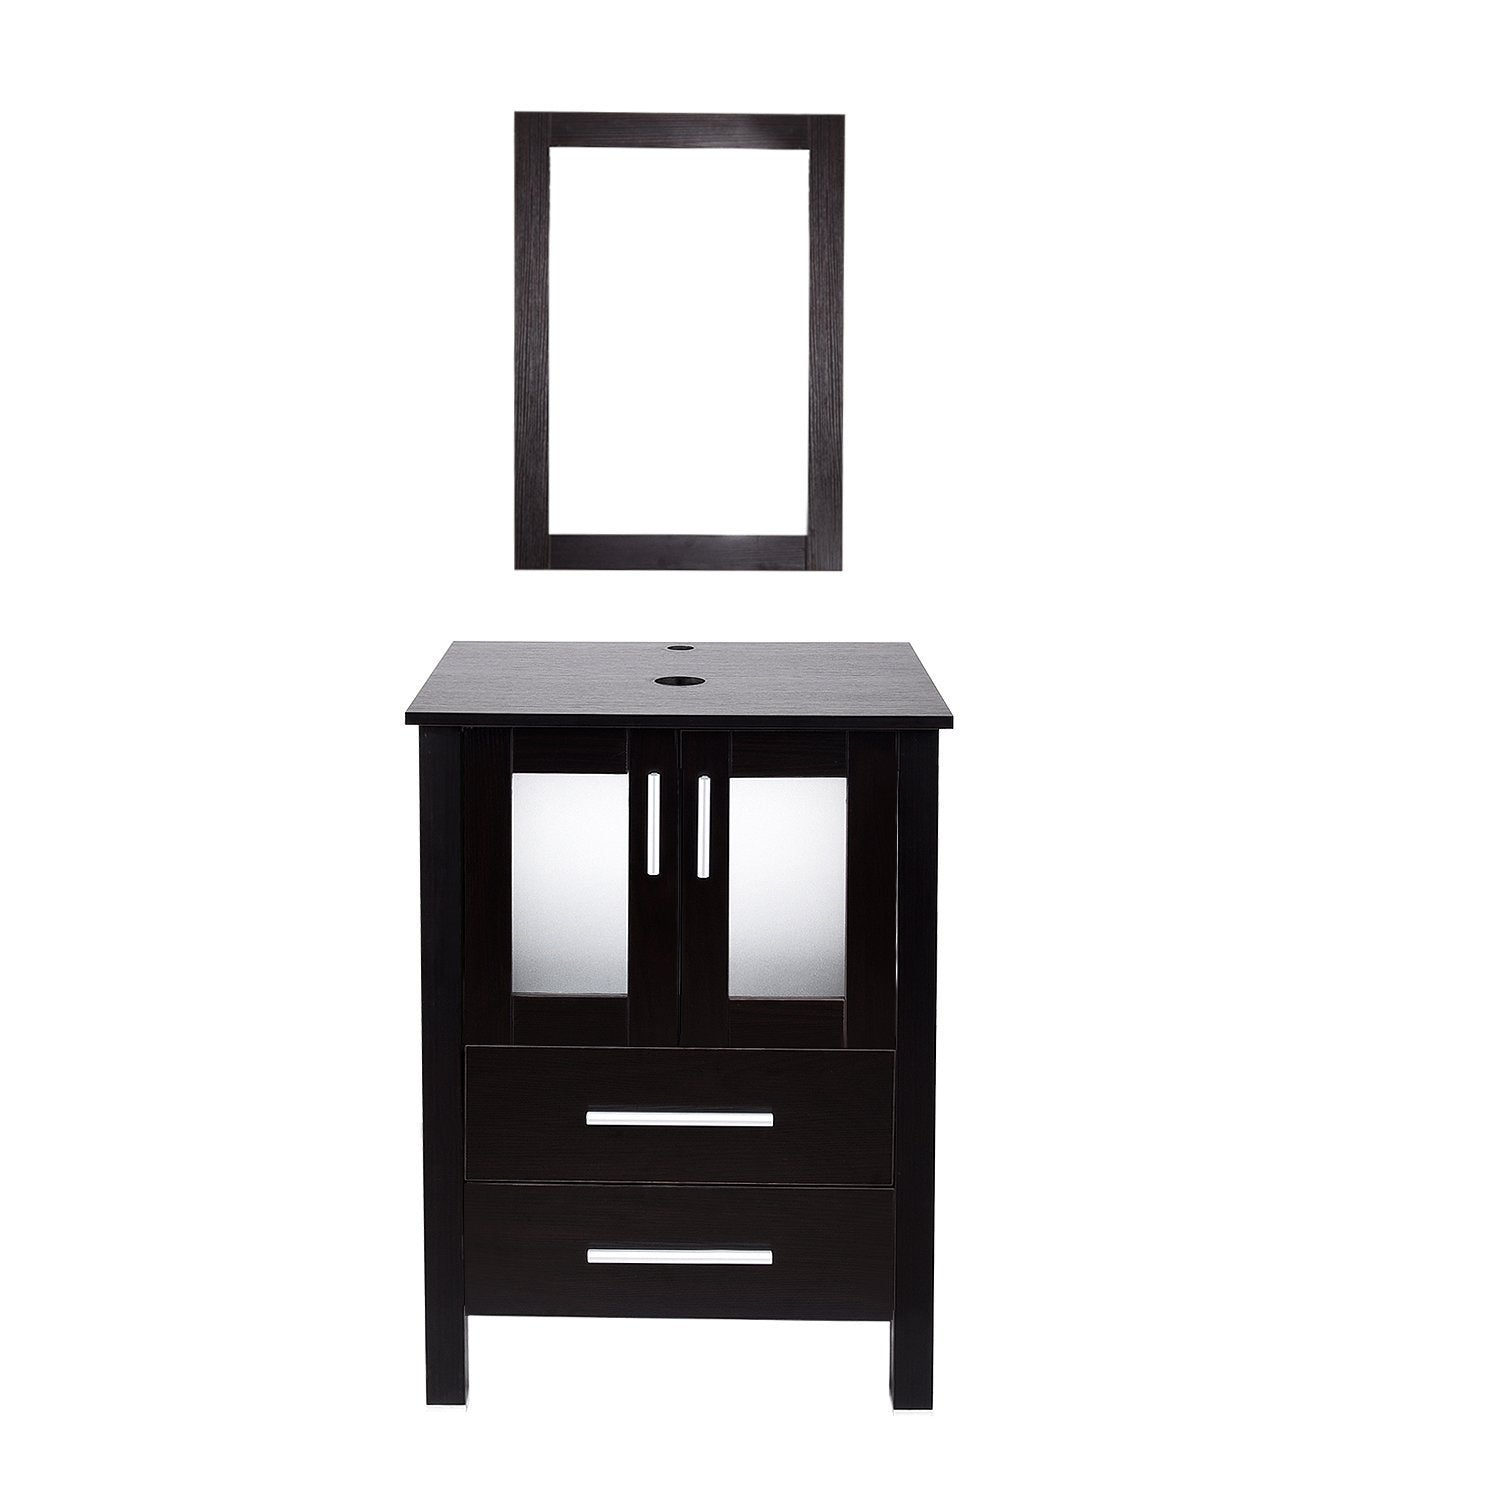 Try 24 inch modern bathroom vanities suite sets with wall mounted mirror mdf stand pedestal storage cabinet espresso wood construction square countertop with chrome footage 2drawer2door